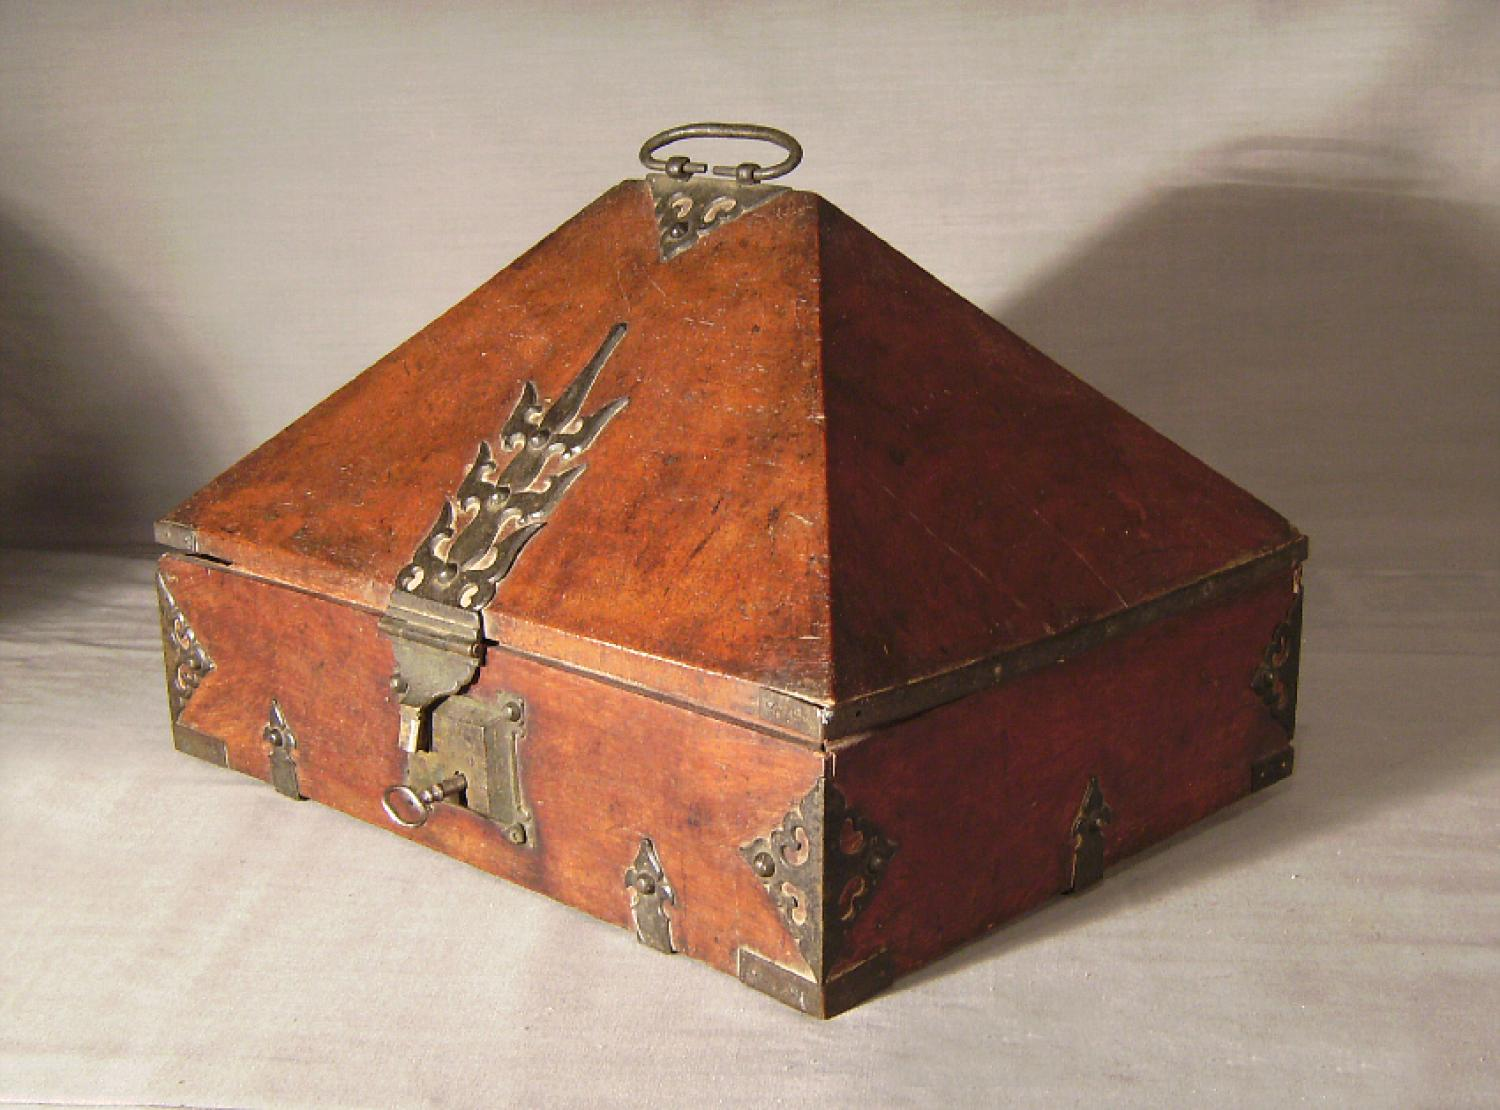 19th c rosewood dowry box from Malabar Coast